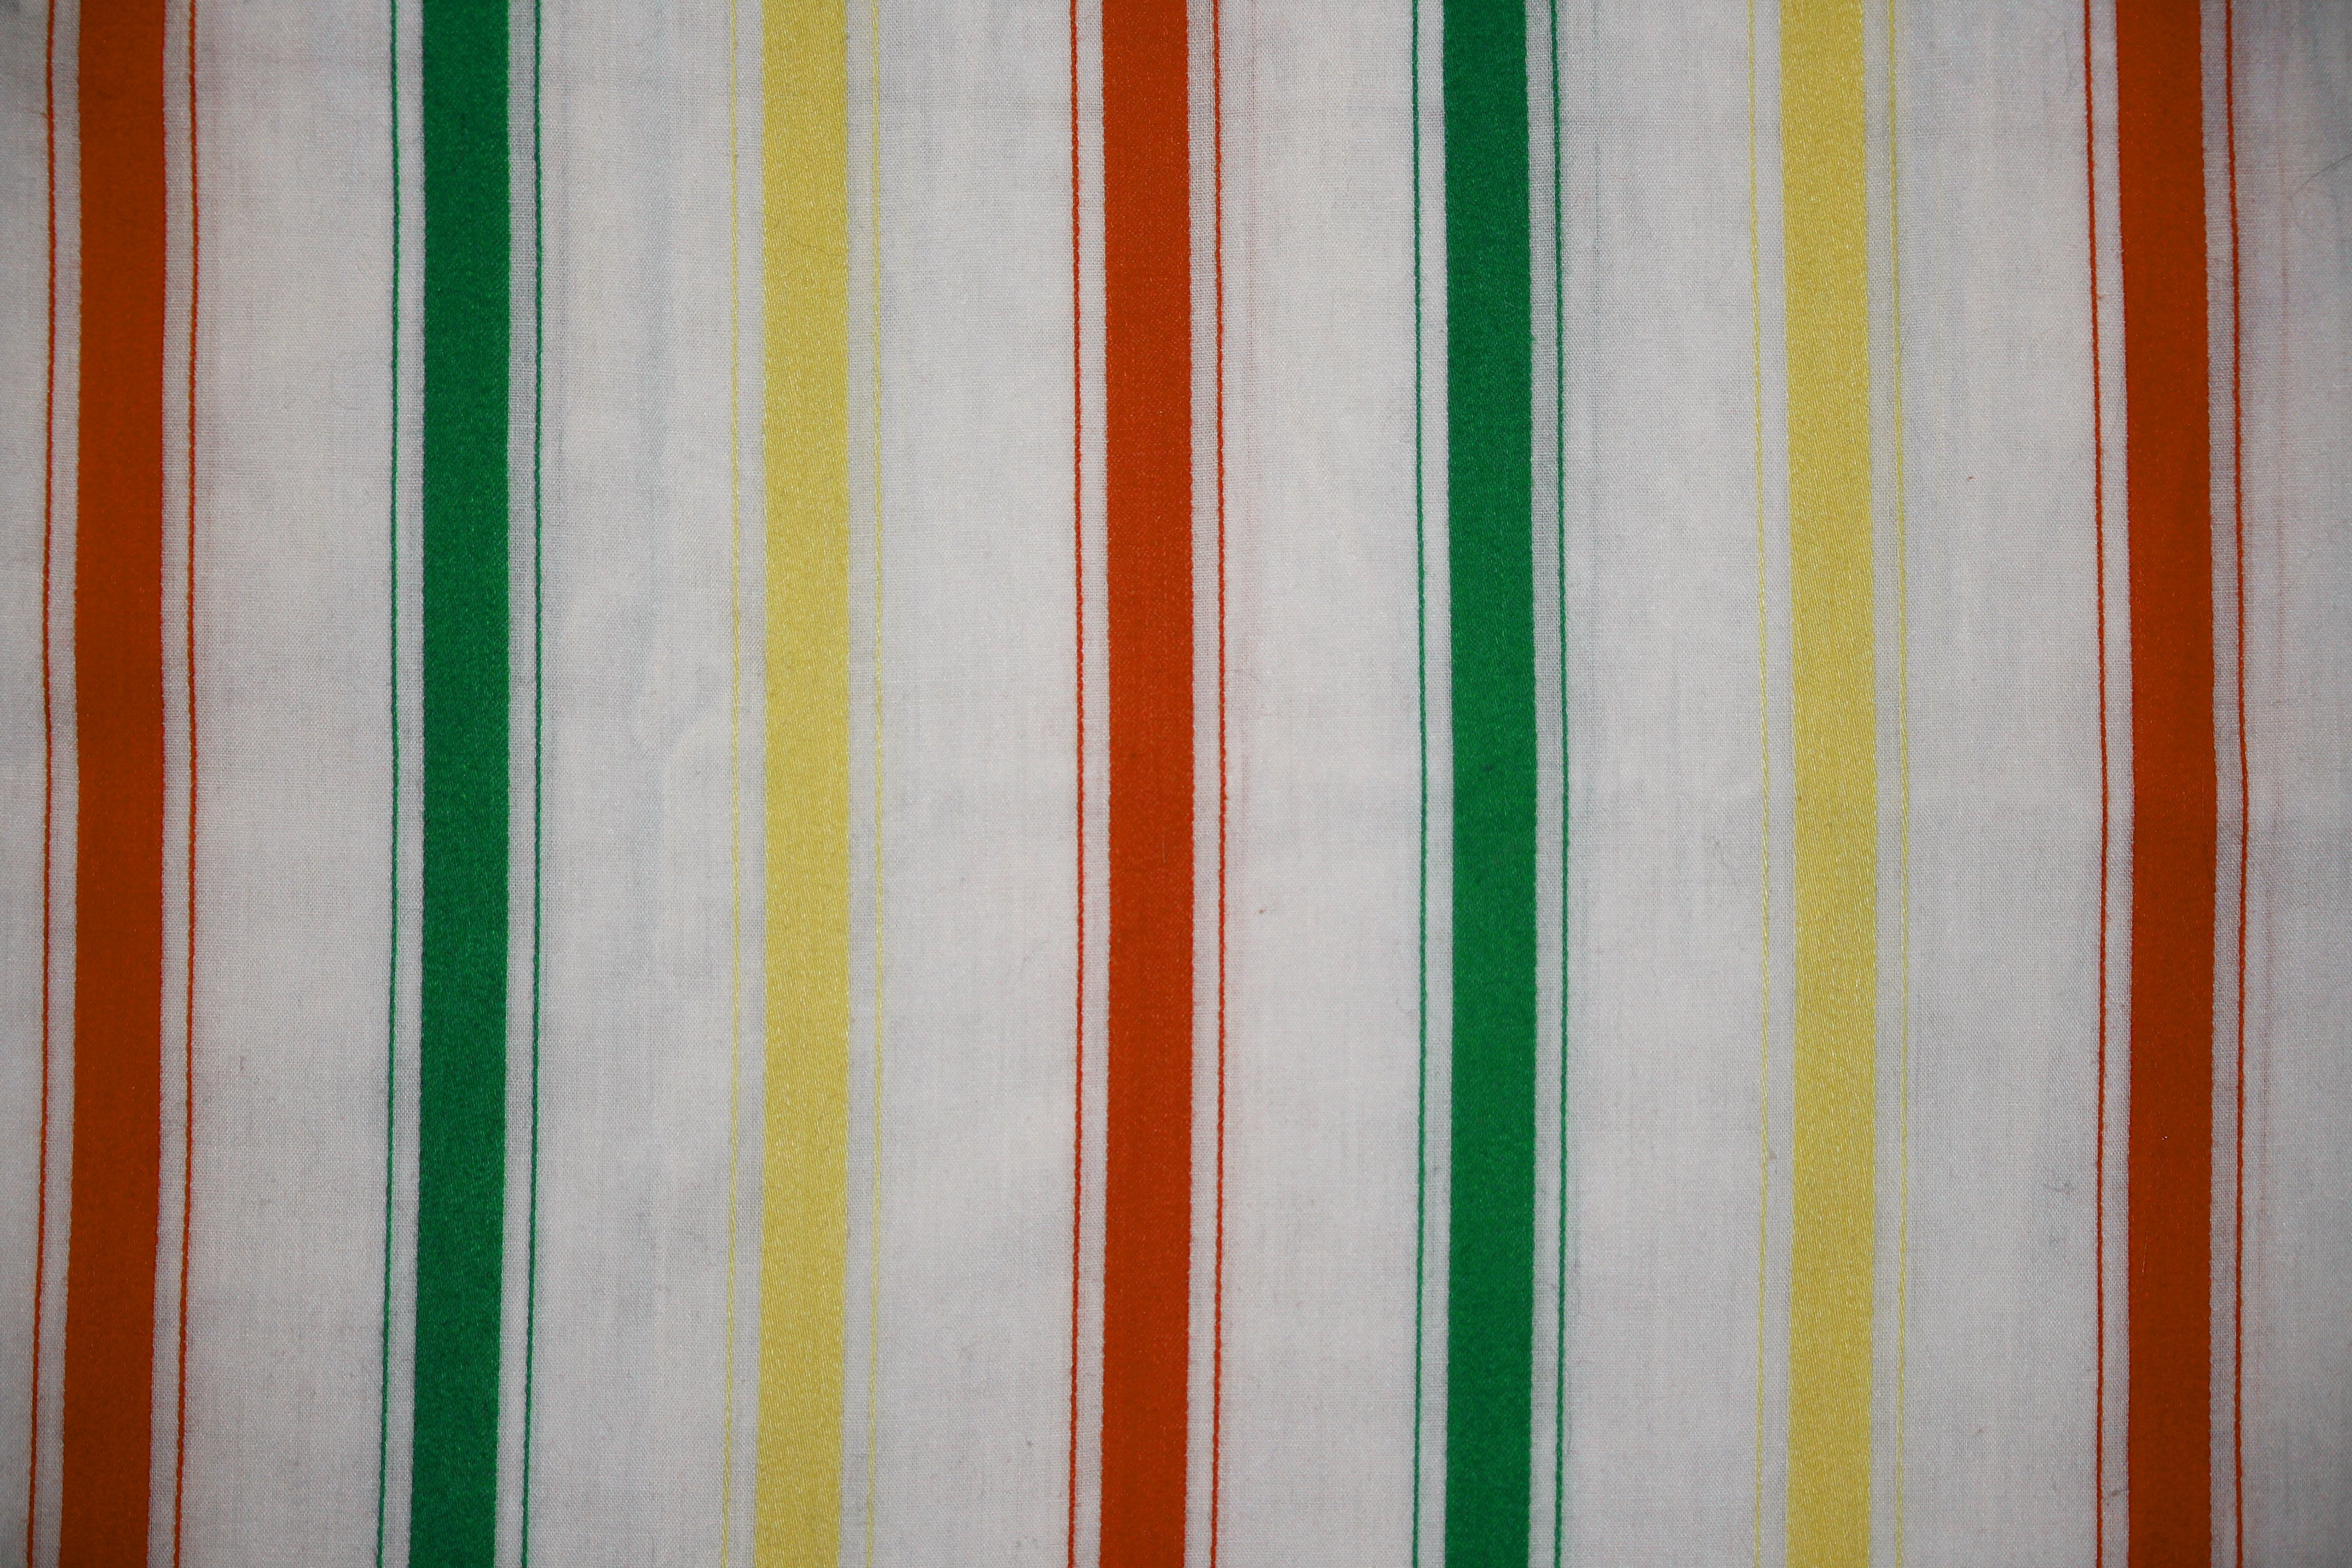 Striped Fabric Texture Orange, Green and Yellow on White - Free High ...: www.photos-public-domain.com/2012/06/24/striped-fabric-texture...